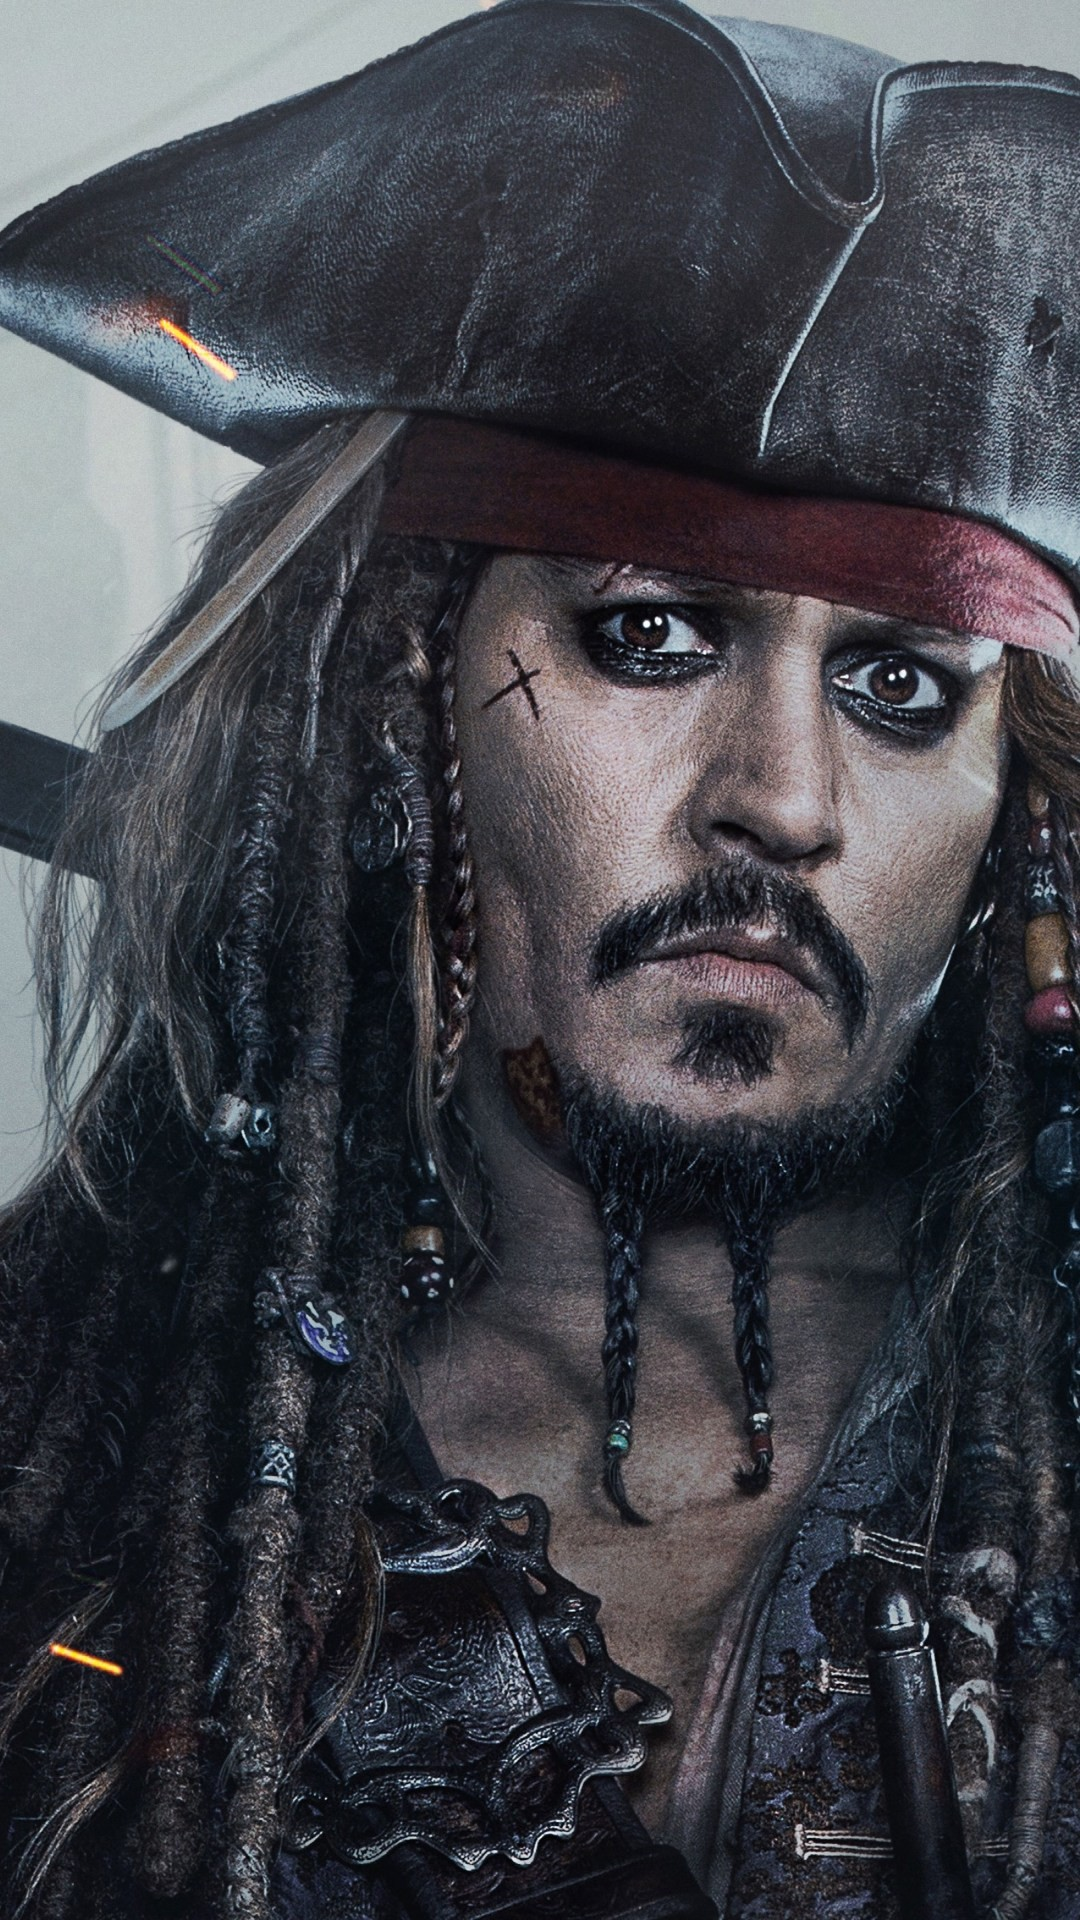 captain jack sparrow essay Believe it or not, johnny depp has been lighting up the silver screen for three decades since breaking out on the hit show 21 jump street, depp has become well known for his eccentric roles, most notably as the suave pirate captain jack sparrow while the pirates of the caribbean franchise made.